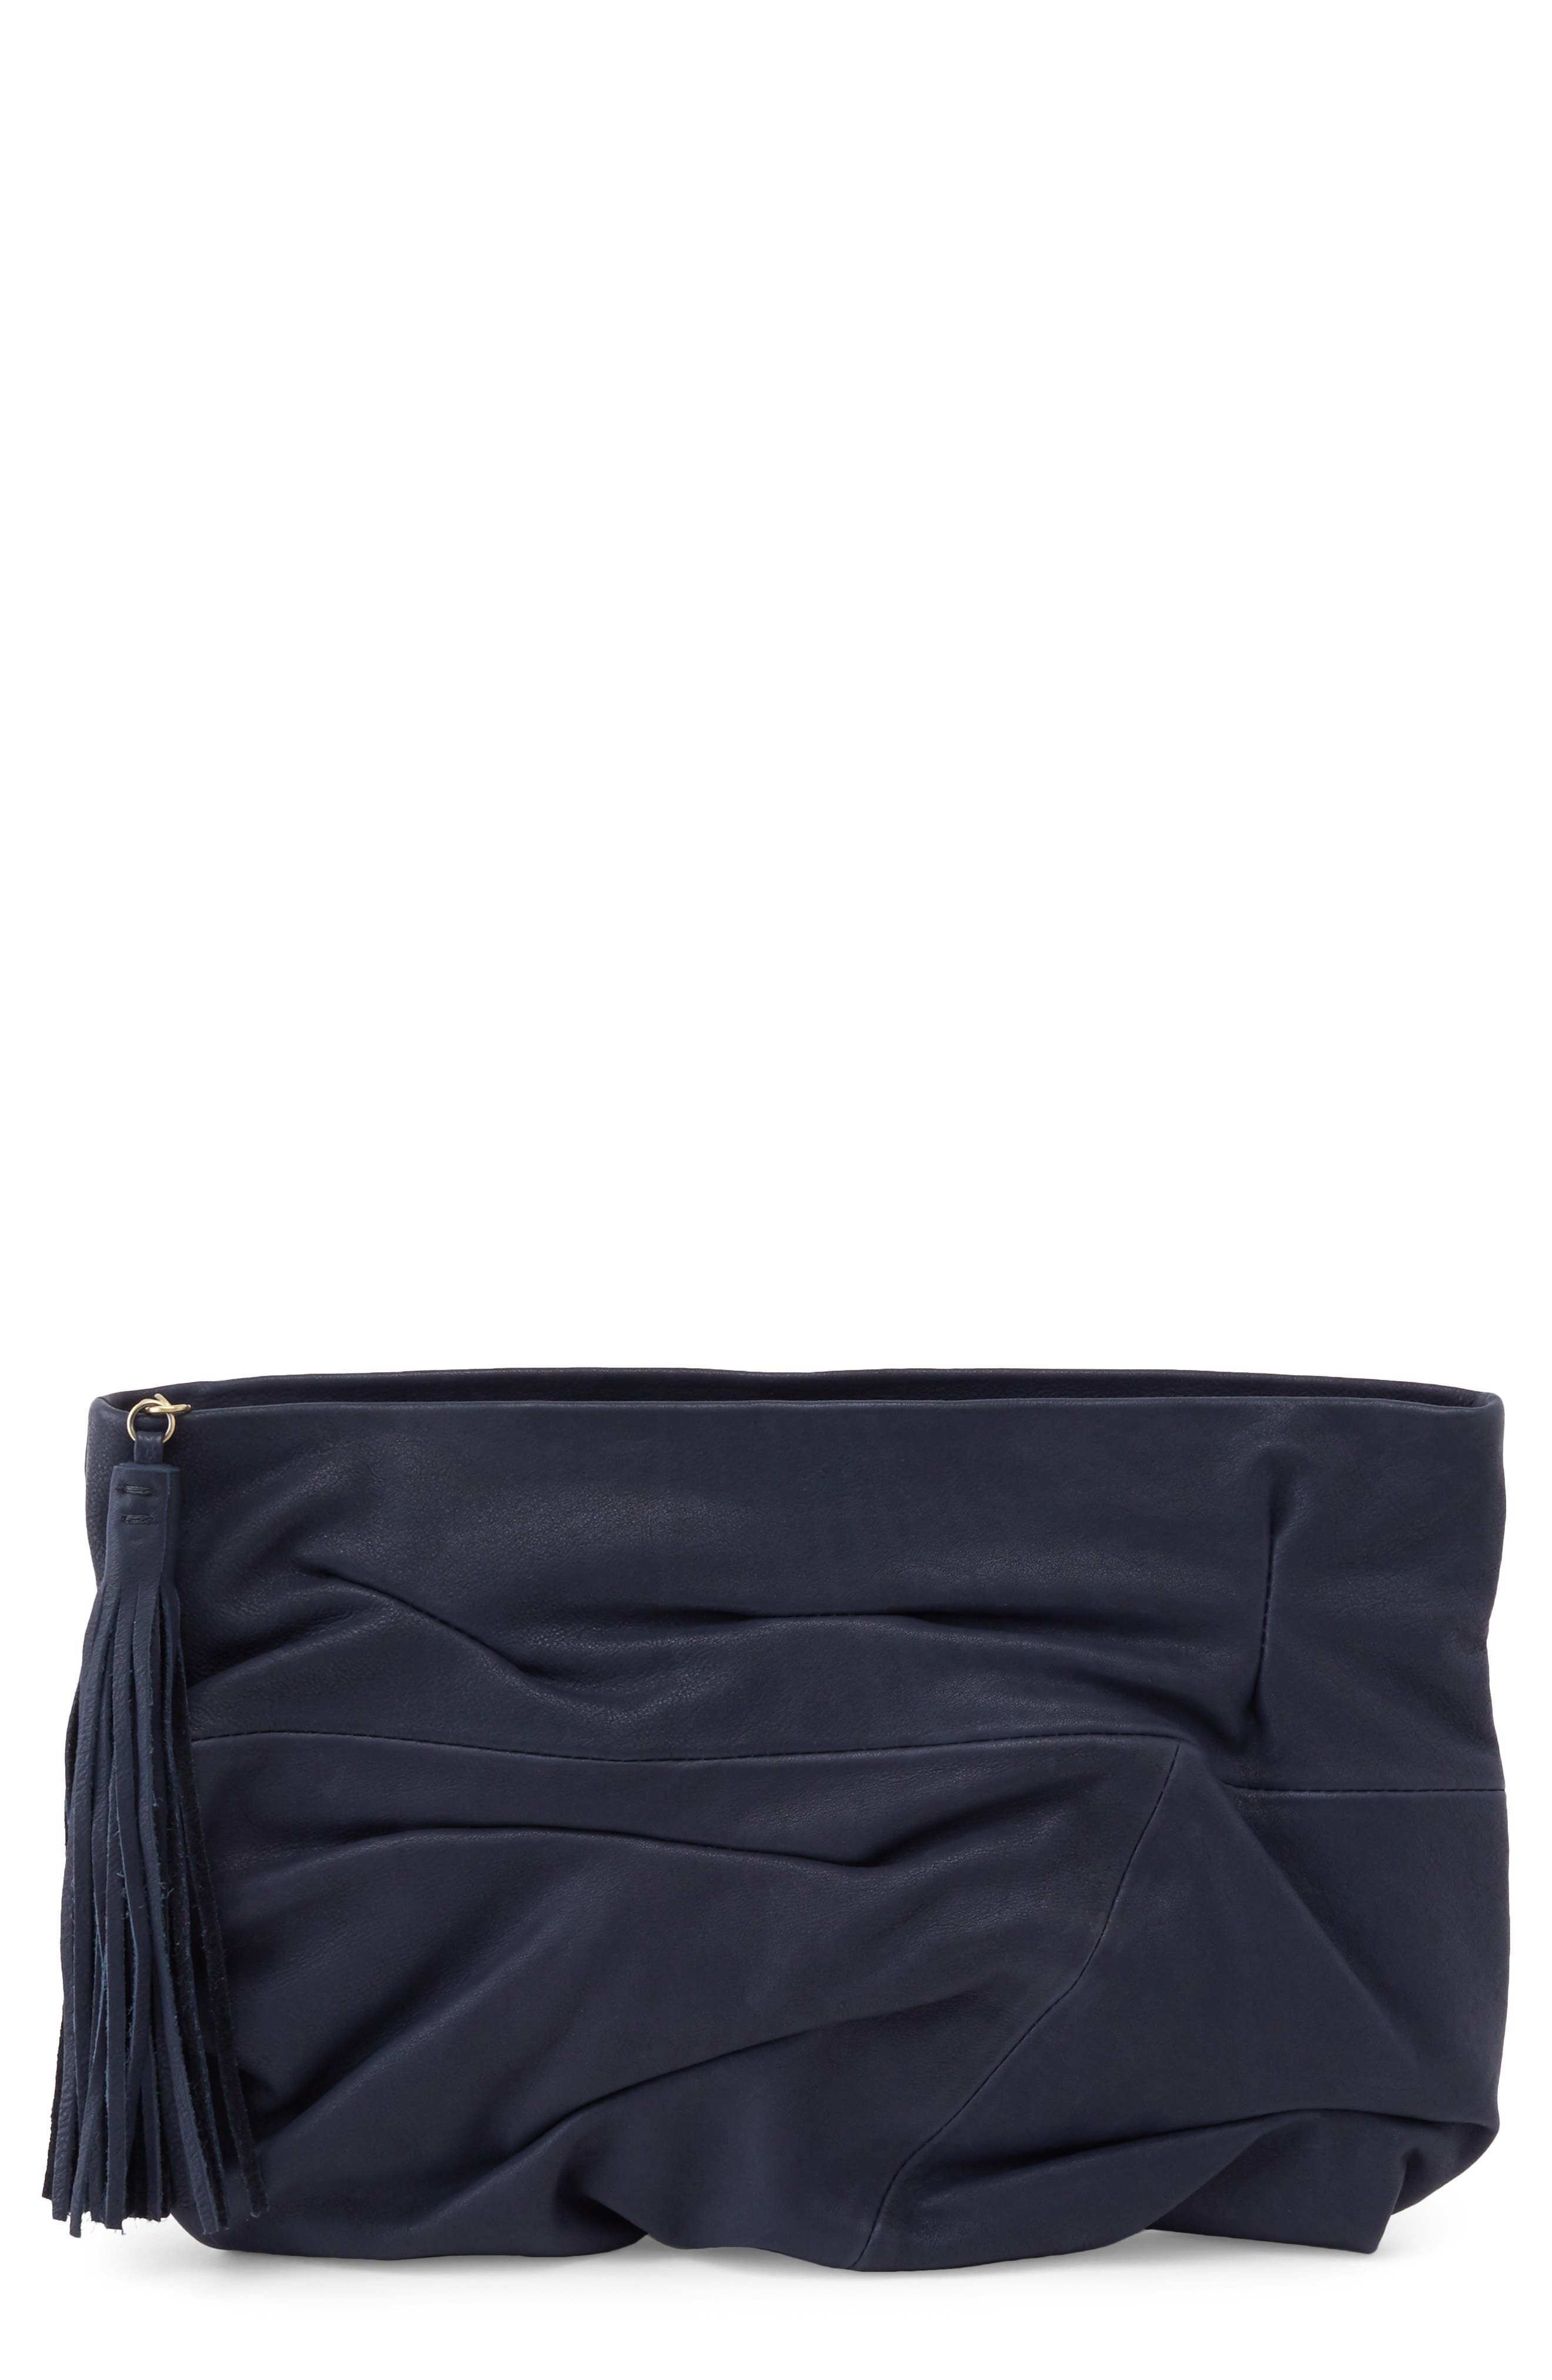 Brave Leather Clutch